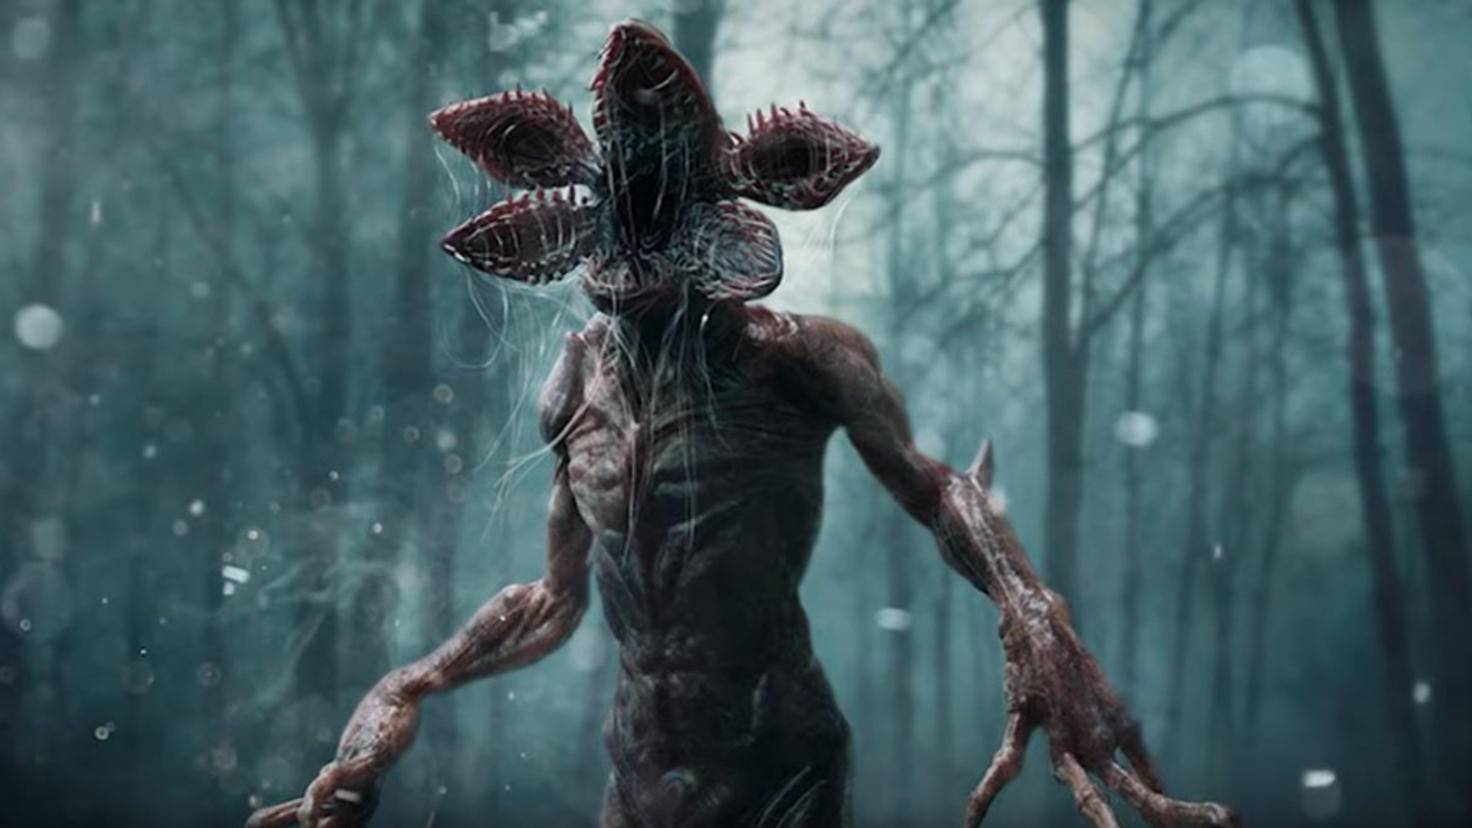 Demogorgon Stranger Things